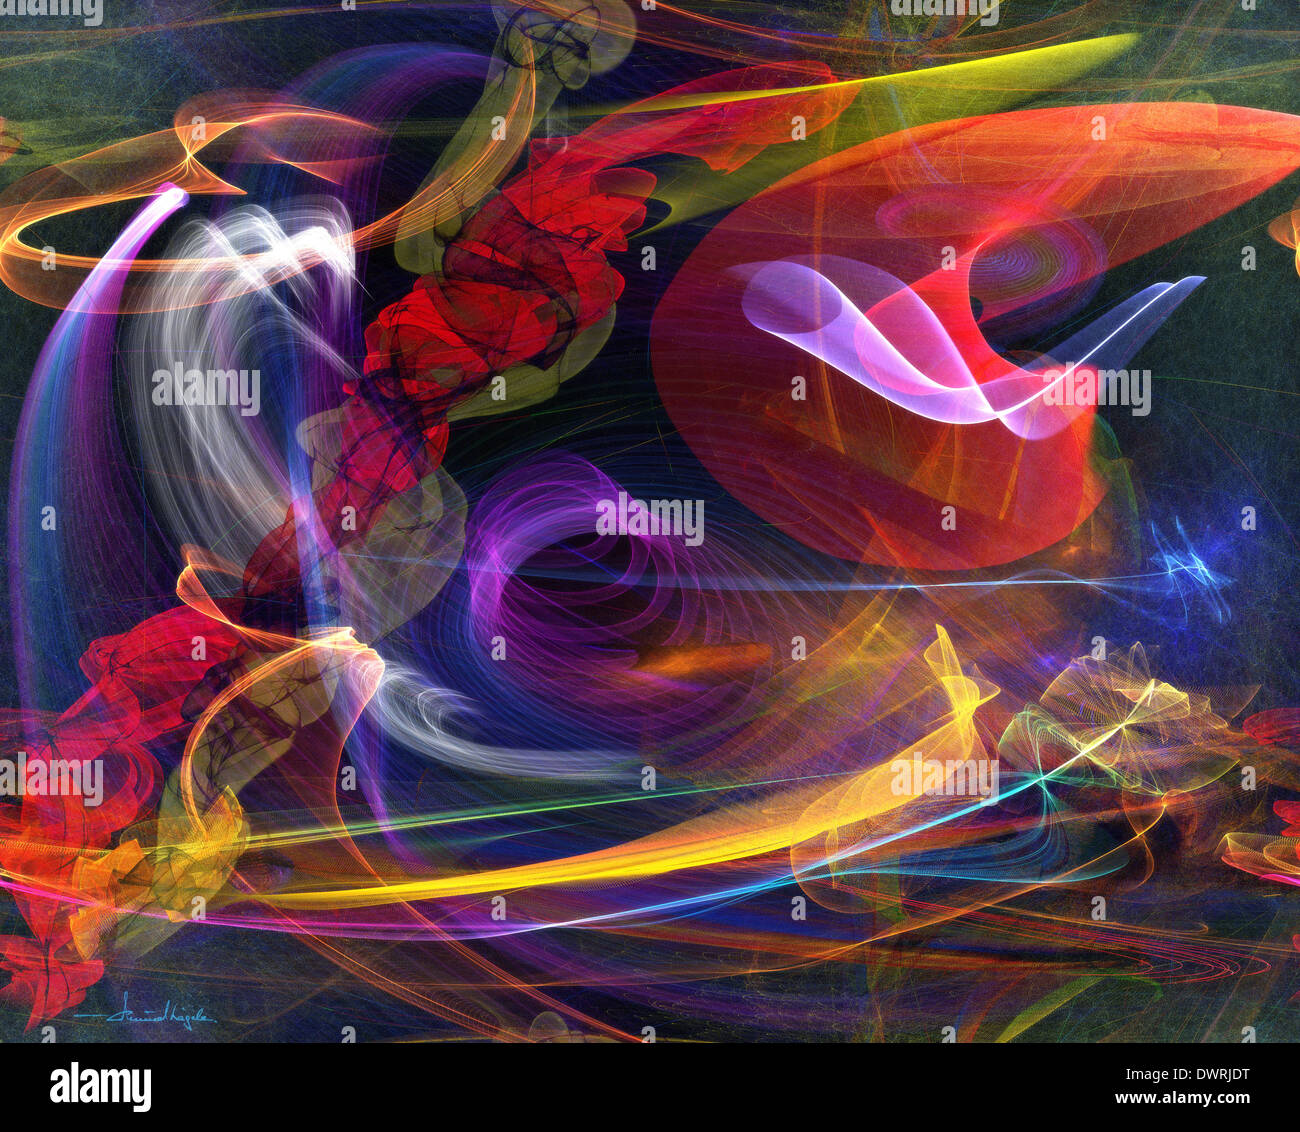 DIGITAL ART: Art of Flight Stock Photo